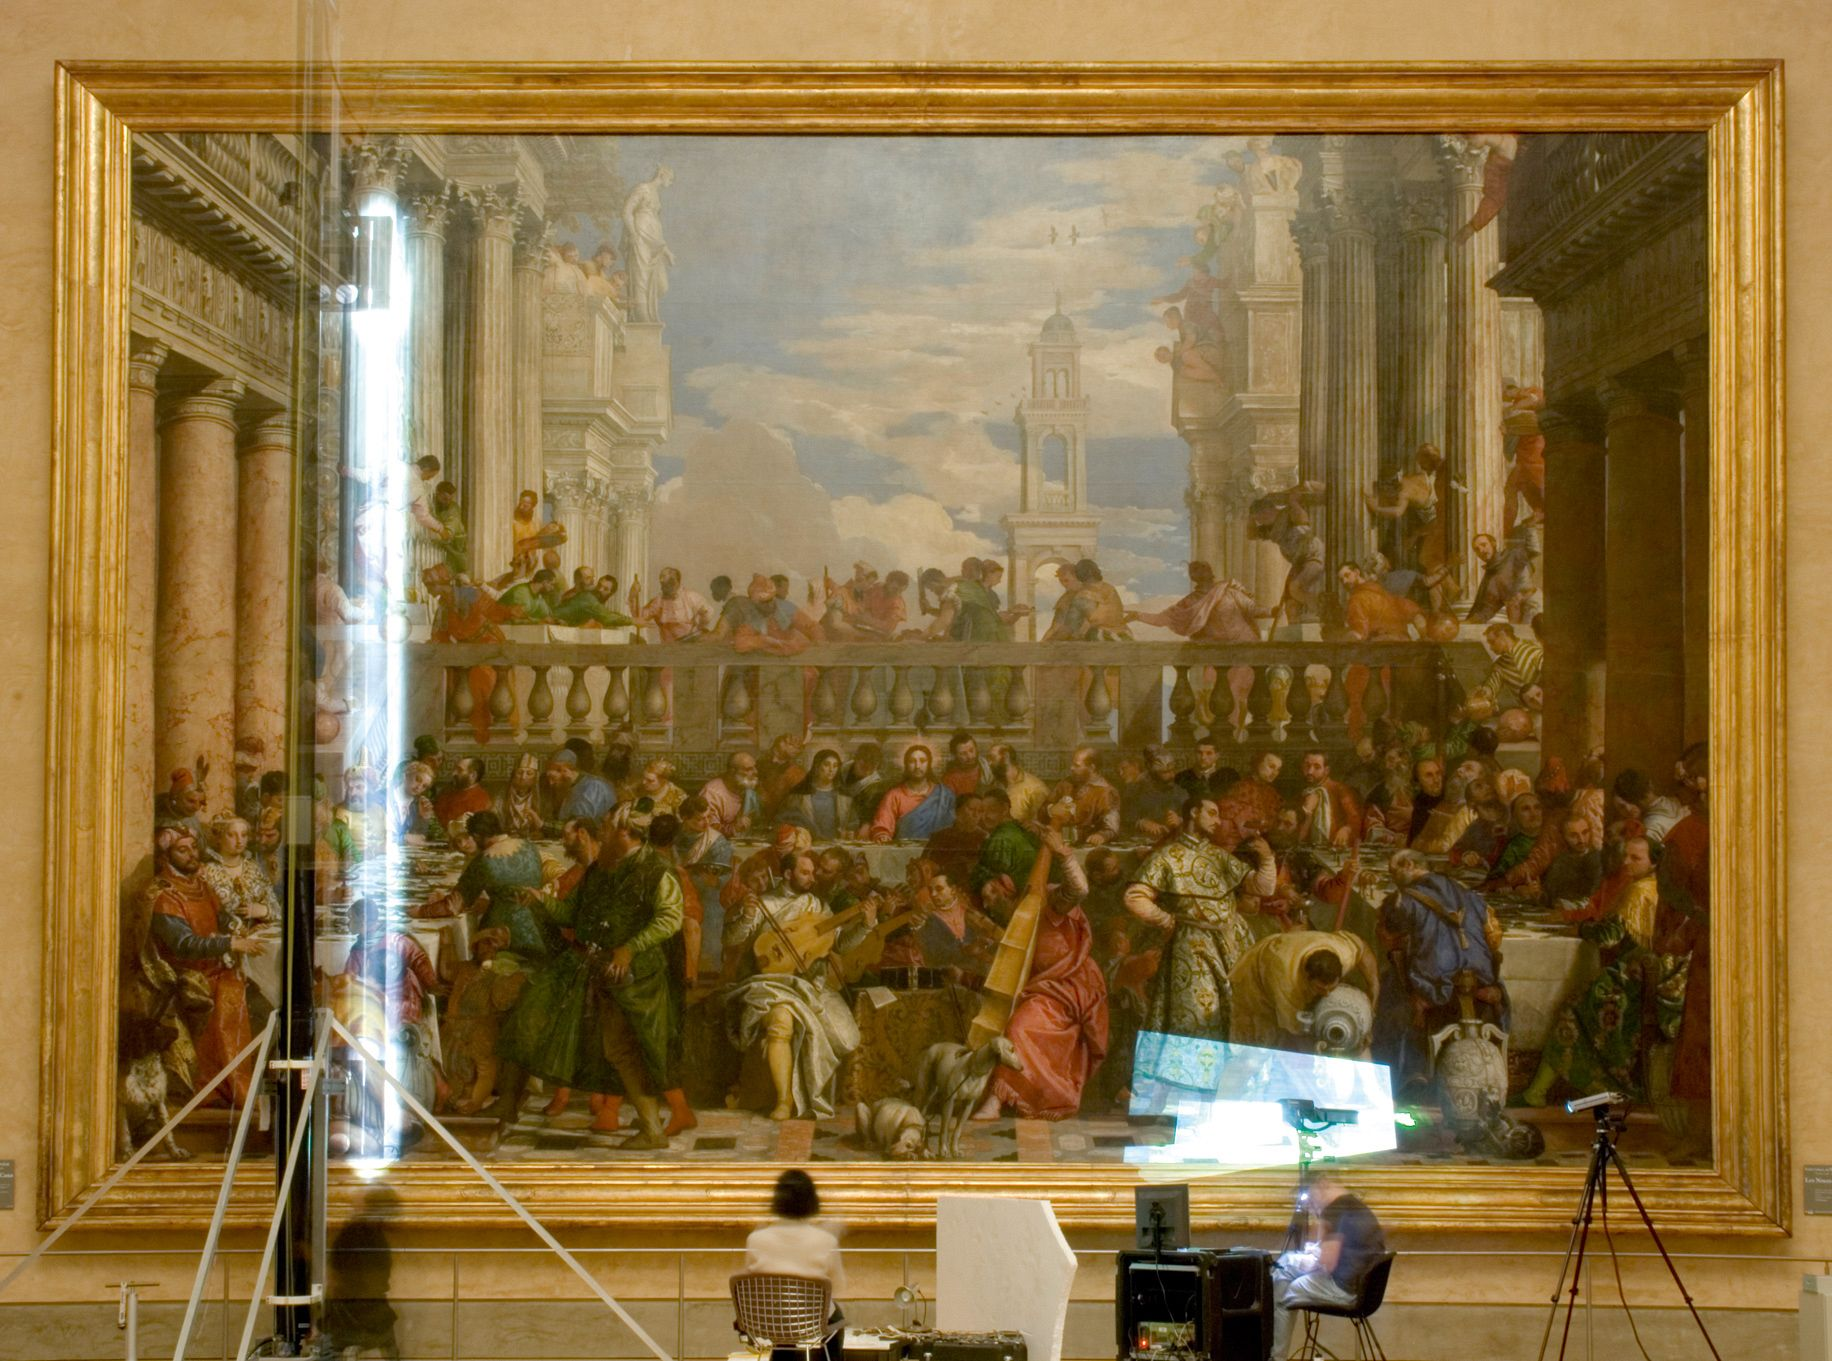 A time lapse photograph of Factum Arte's team recording the original Veronese painting in the Louvre. Photo: Grégoire Dupond/Factum Arte